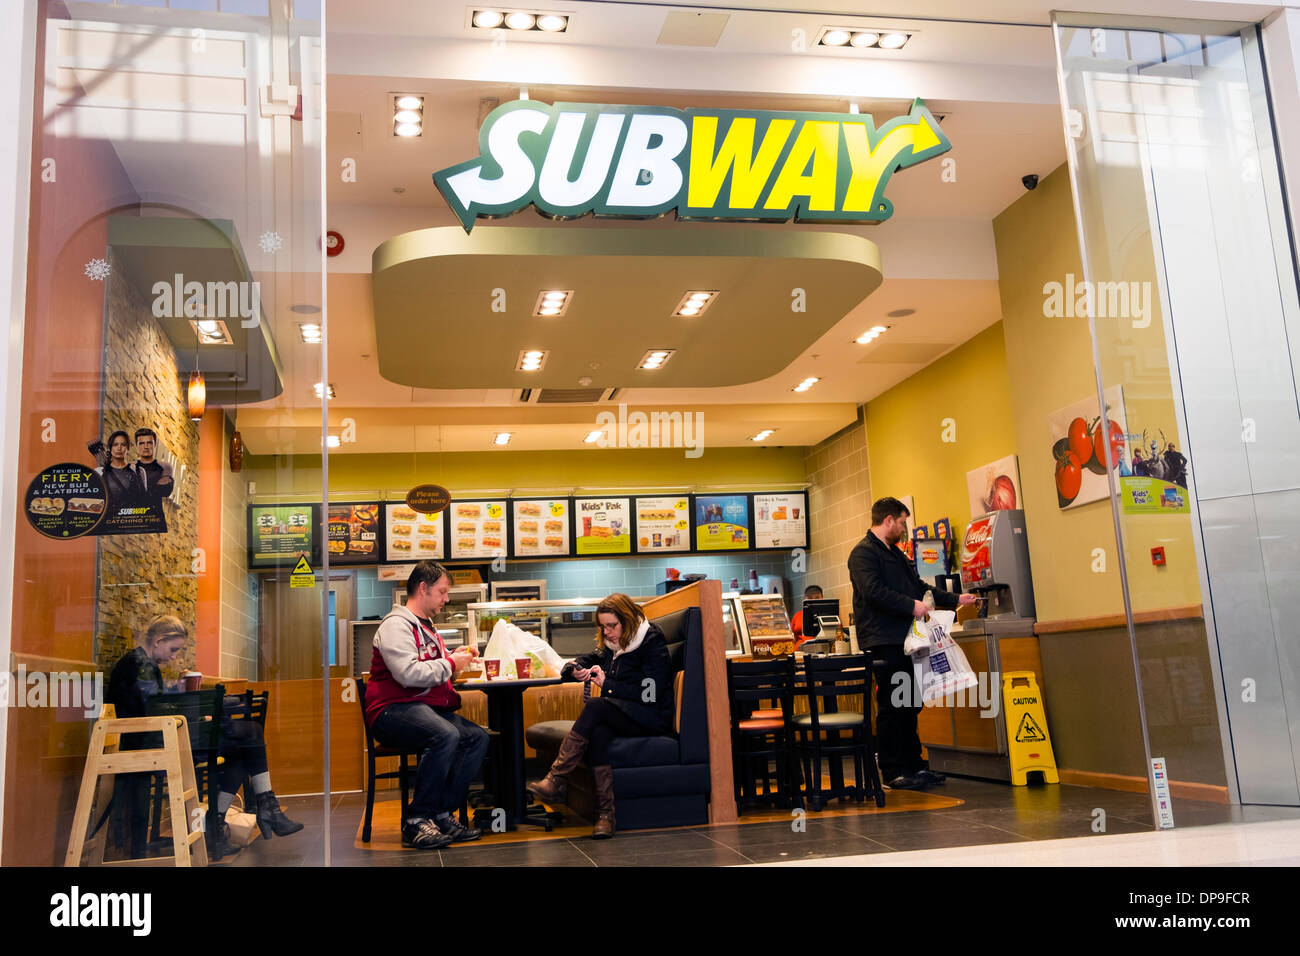 Subway restaurant at Merry Hill, UK. - Stock Image